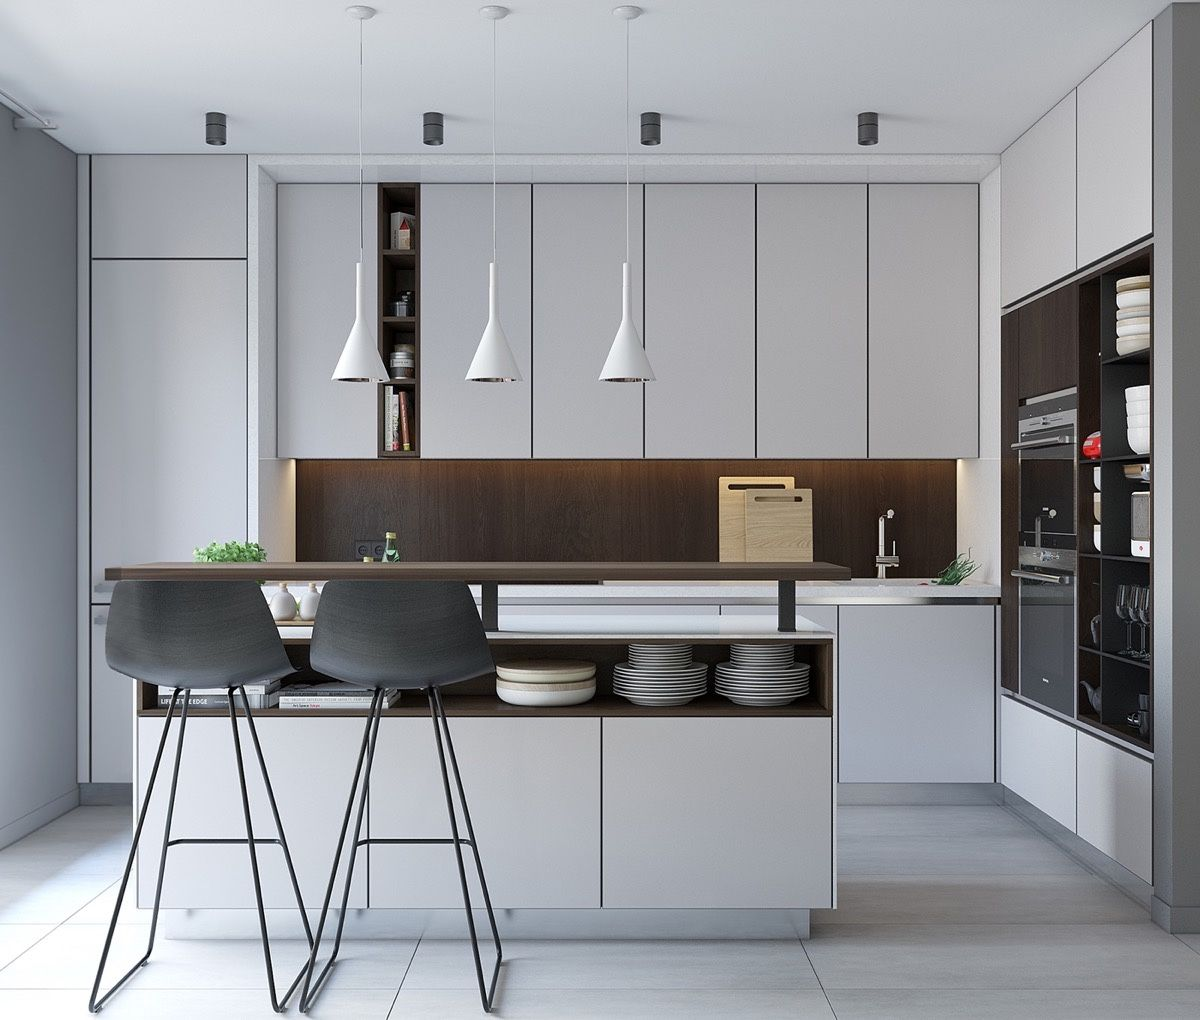 Modern Kitchen Images Tall Wall Cabinets 25 Minimalist Kitchens To Get Super Sleek Inspiration Trending Ideas Minimalistdesign Design2018 Minimalistkitchen Kitchendesign Hotkitchen